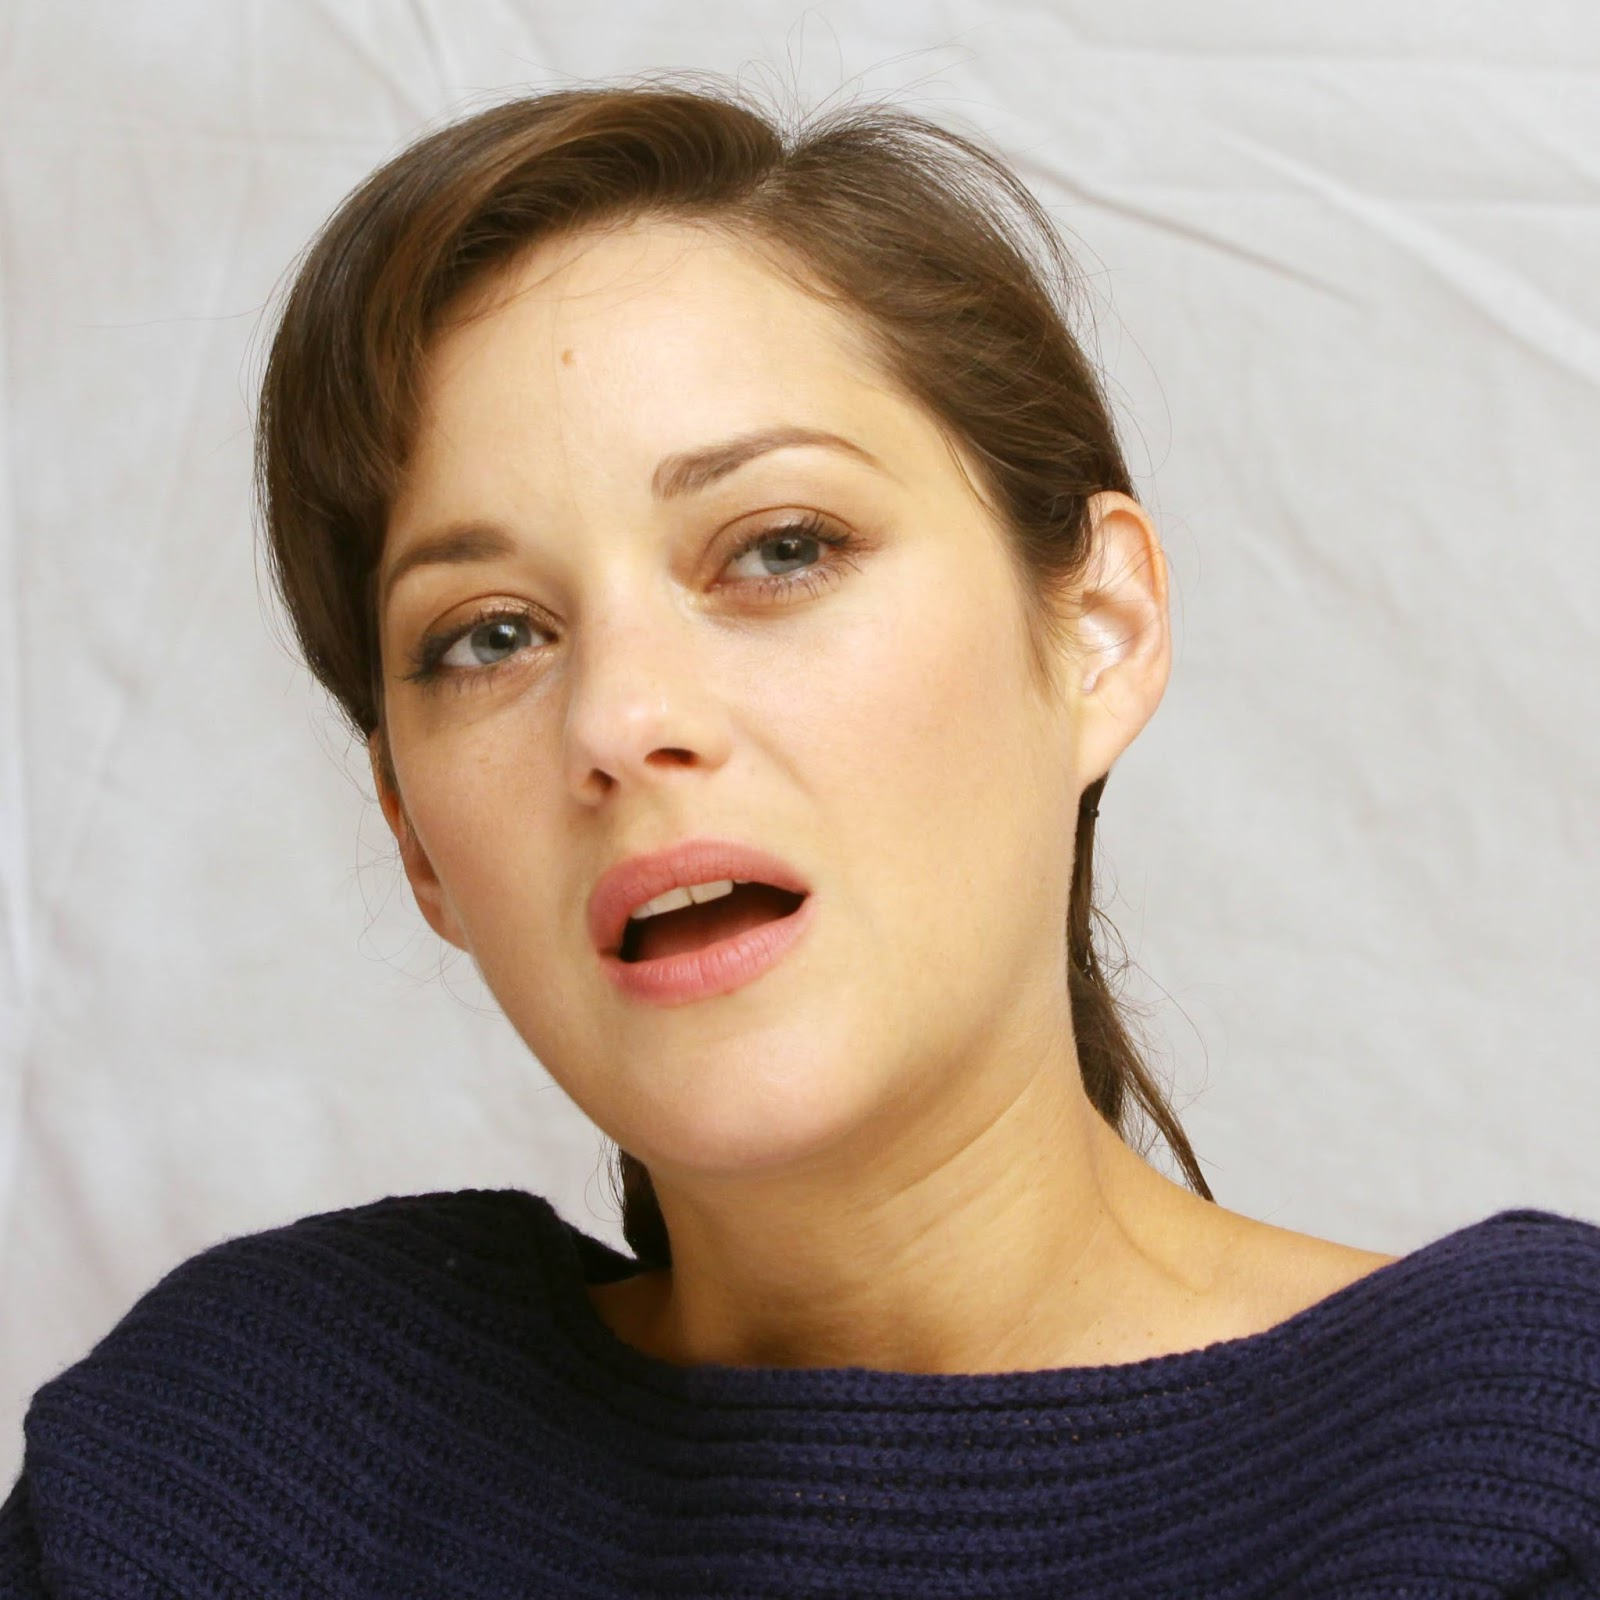 Marion Cotillard Biography And Pictures Gallery 2017 ...